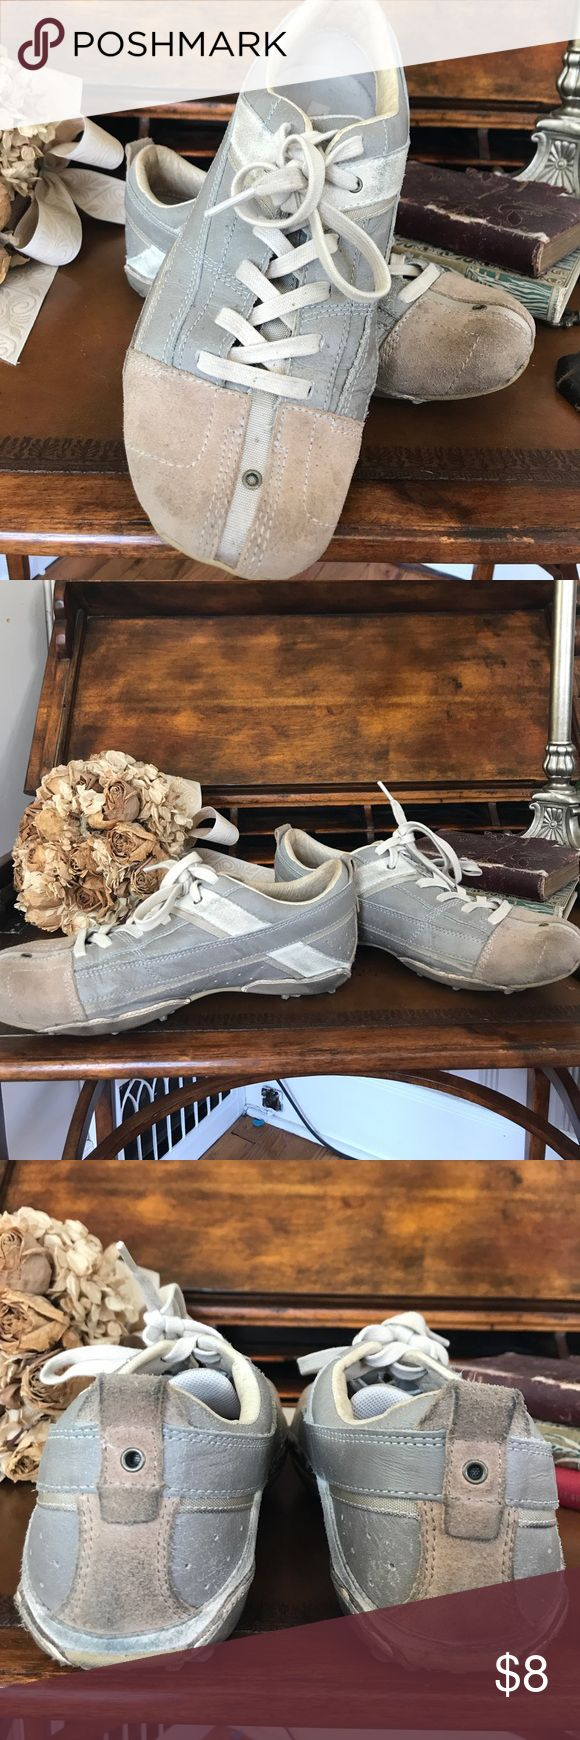 Diesel shoes, size 8.5 Super comfy pair of Diesel shoes, size 8.5.  They are worn in but still have s lot of life left in them! Color is a blend of cream, gray and tan Shoes Sneakers